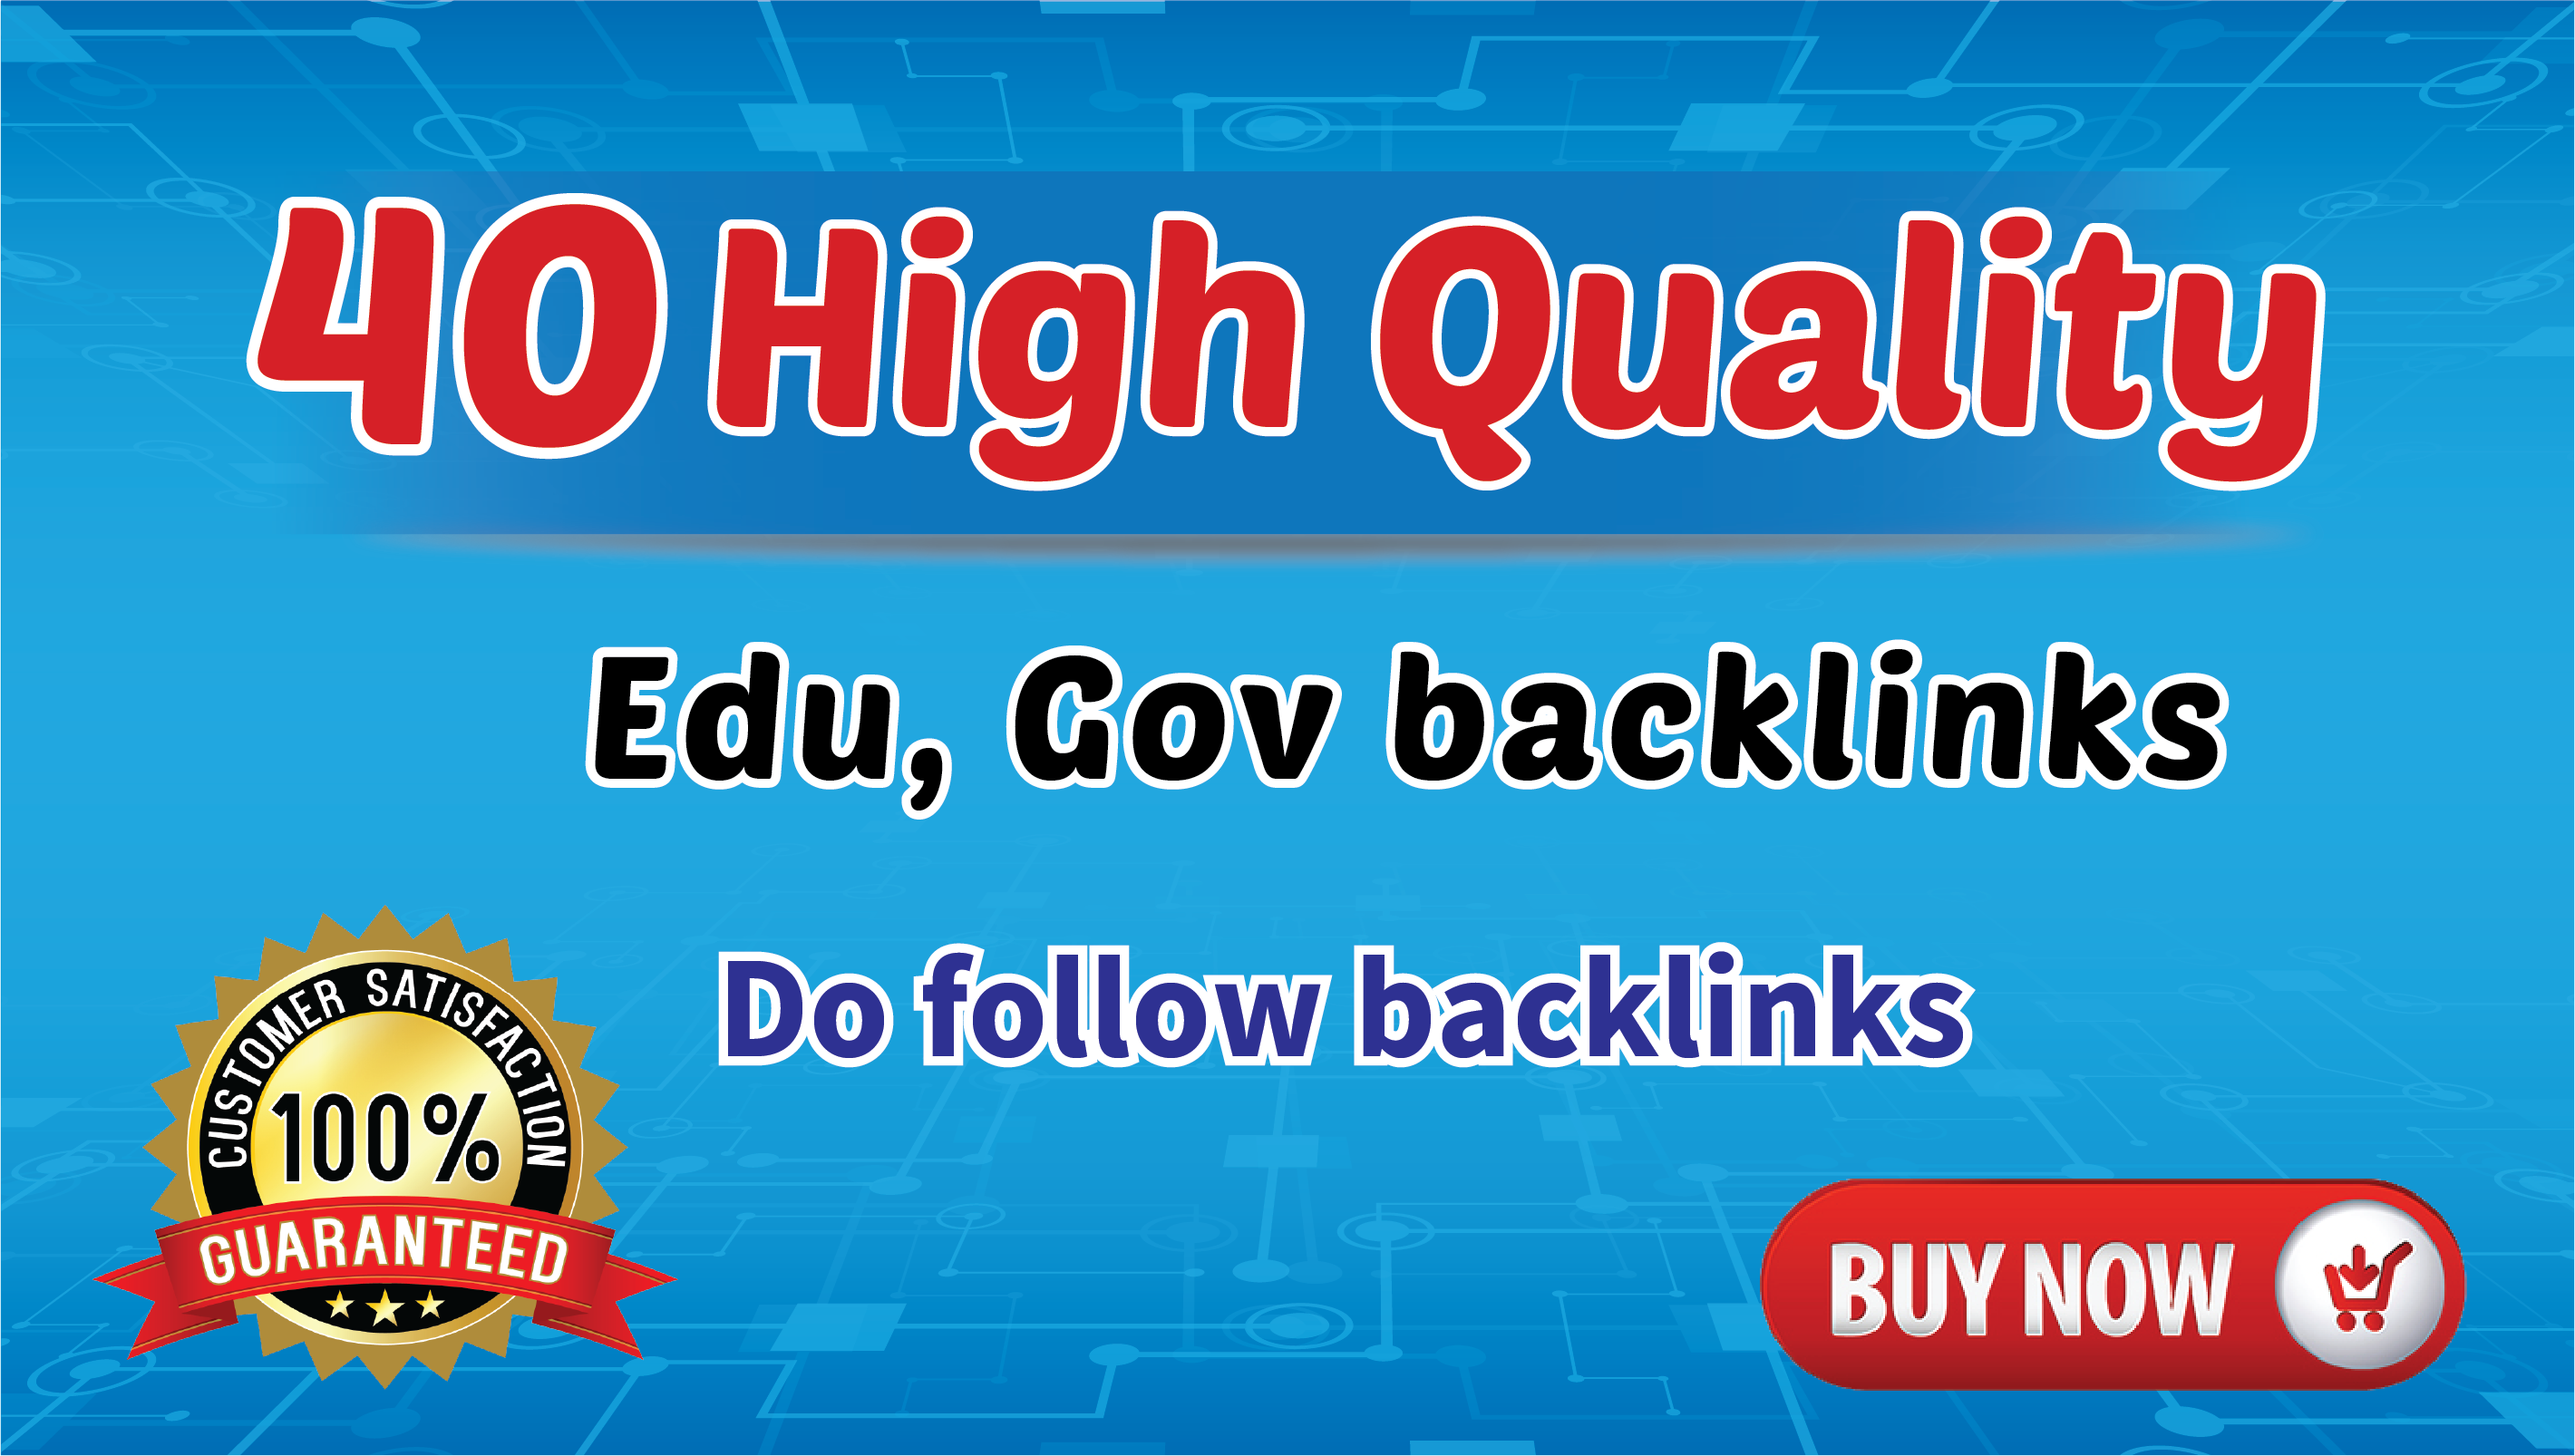 EDU GOV HIgh Quality 40 DO FOLLOW Blog Comments